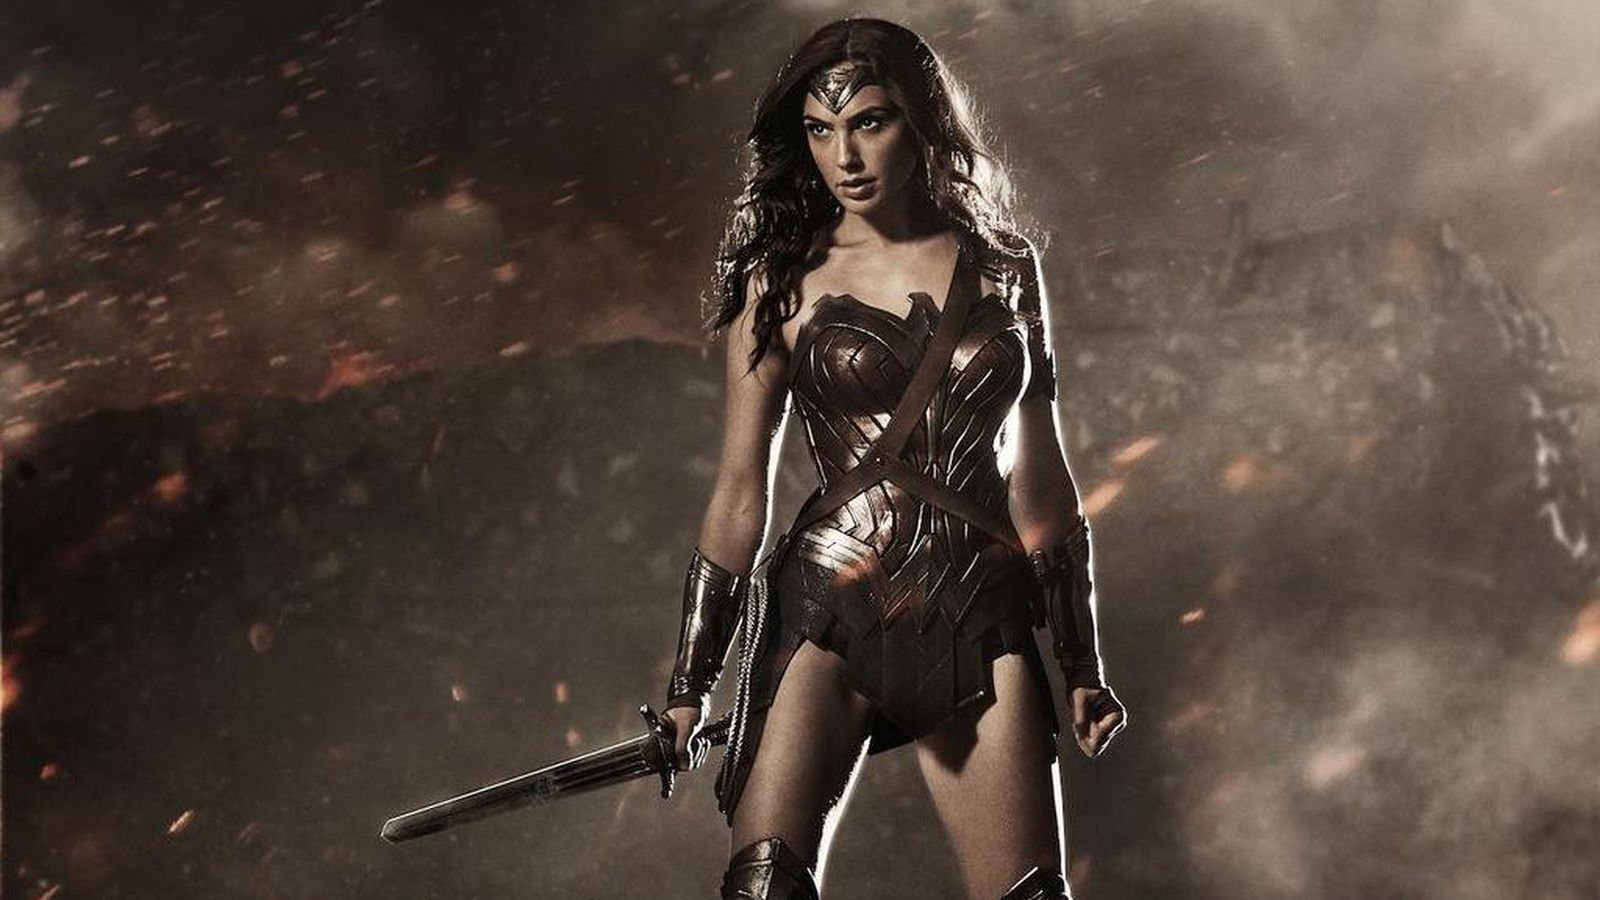 The Wonder Woman Movie Is Coming Sooner Than Expected